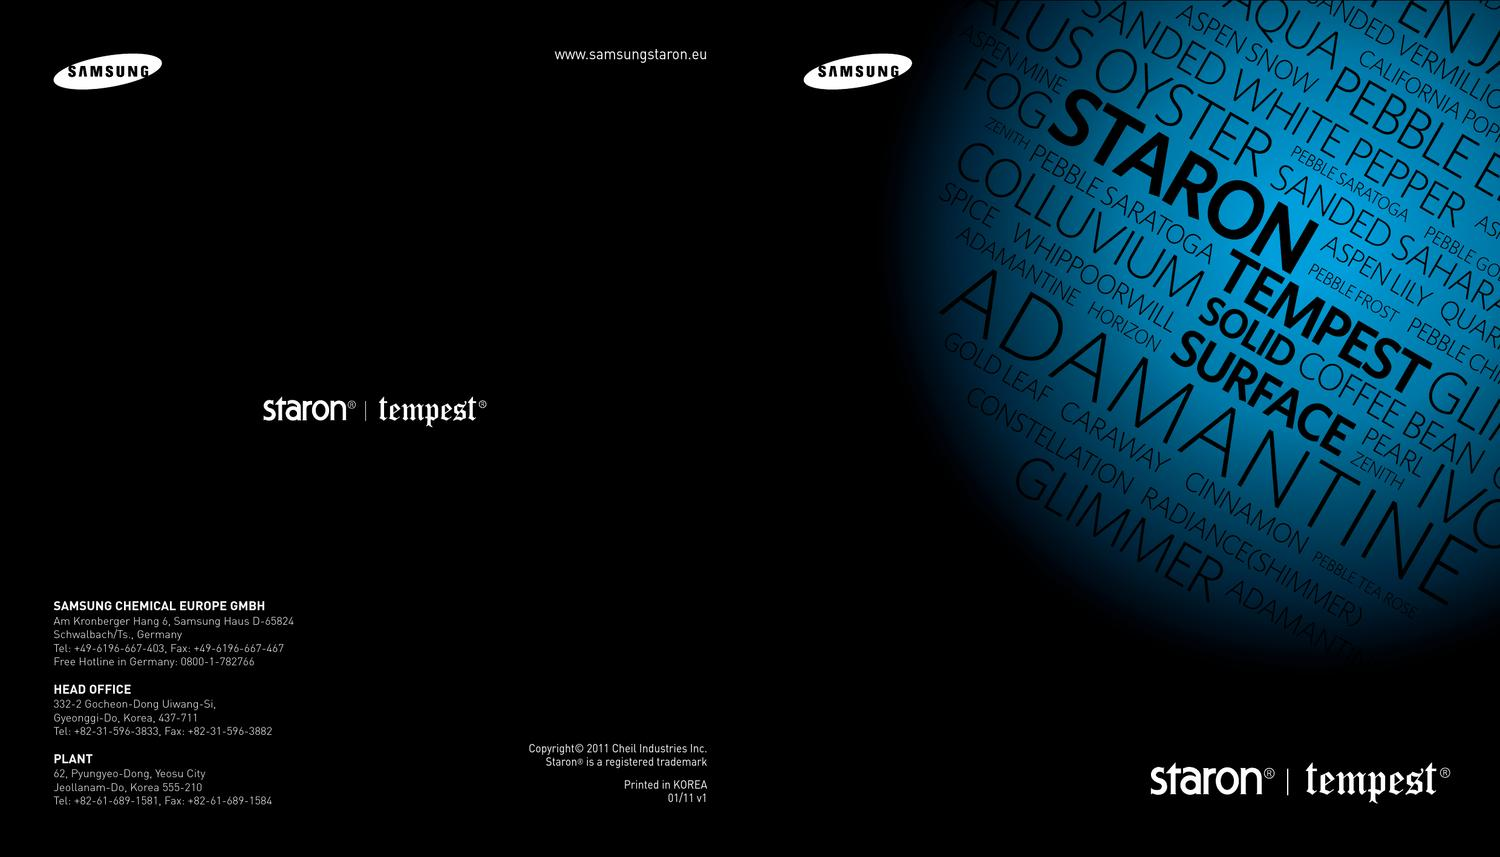 New colors collection Tempest of Samsung Staron by Philip Bogin - issuu